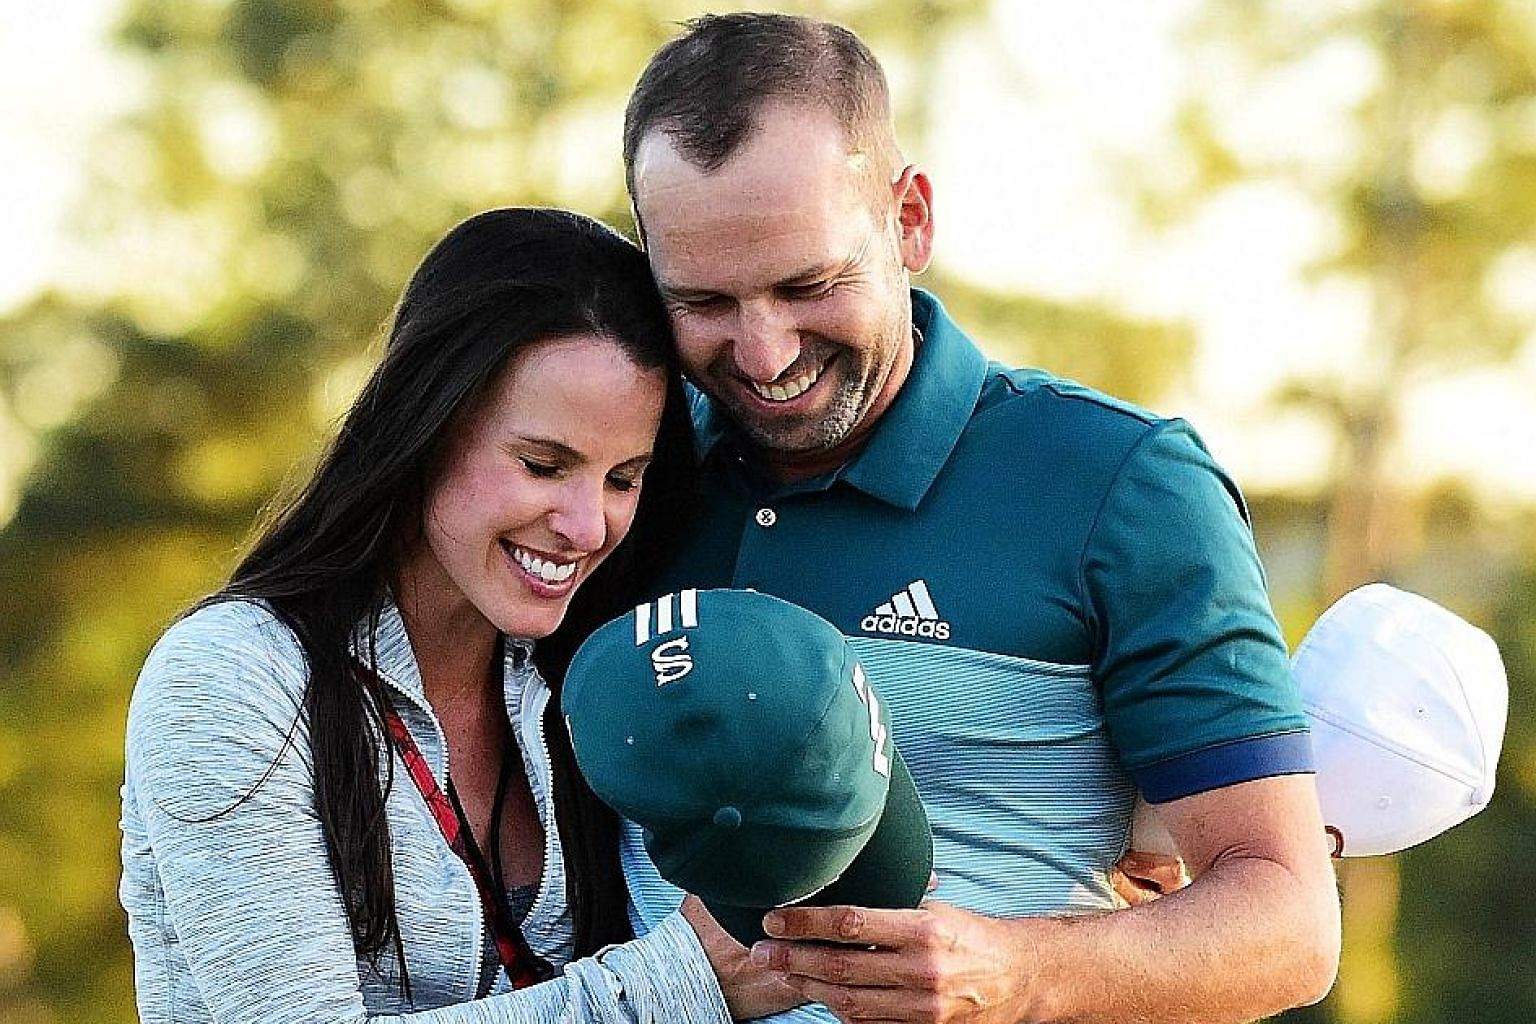 Sergio Garcia of Spain embraces fiancee Angela Akins after defeating Justin Rose to win his first Major. Akins, who will marry Garcia in July, left him a series of inspirational Post-It notes during the tournament.